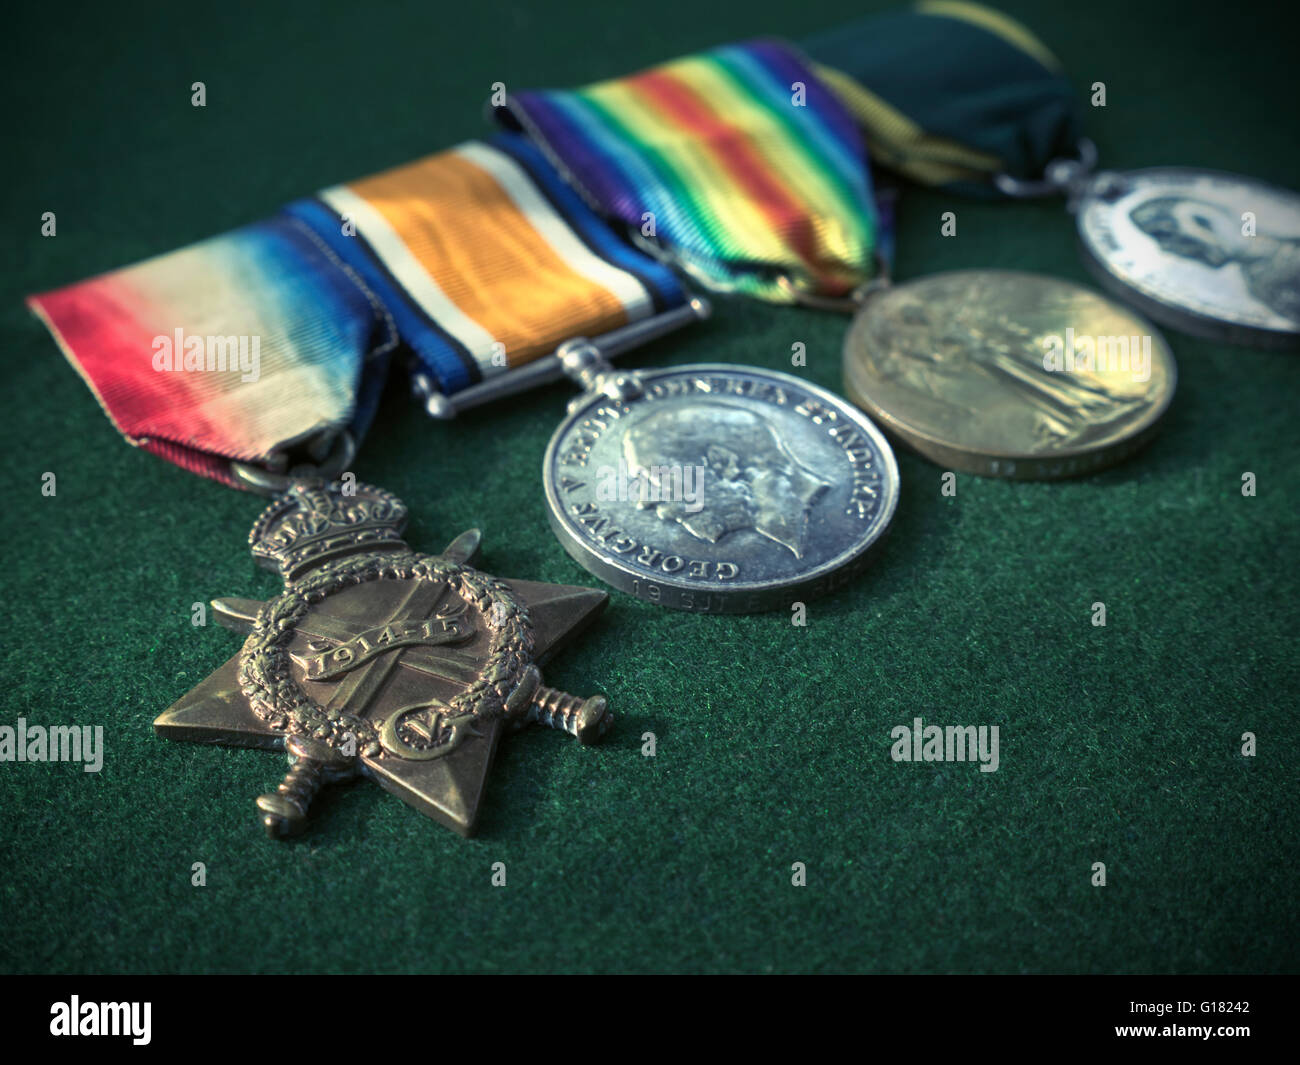 World War One WW1 British soldiers medals and ribbons on green beize surface - Stock Image